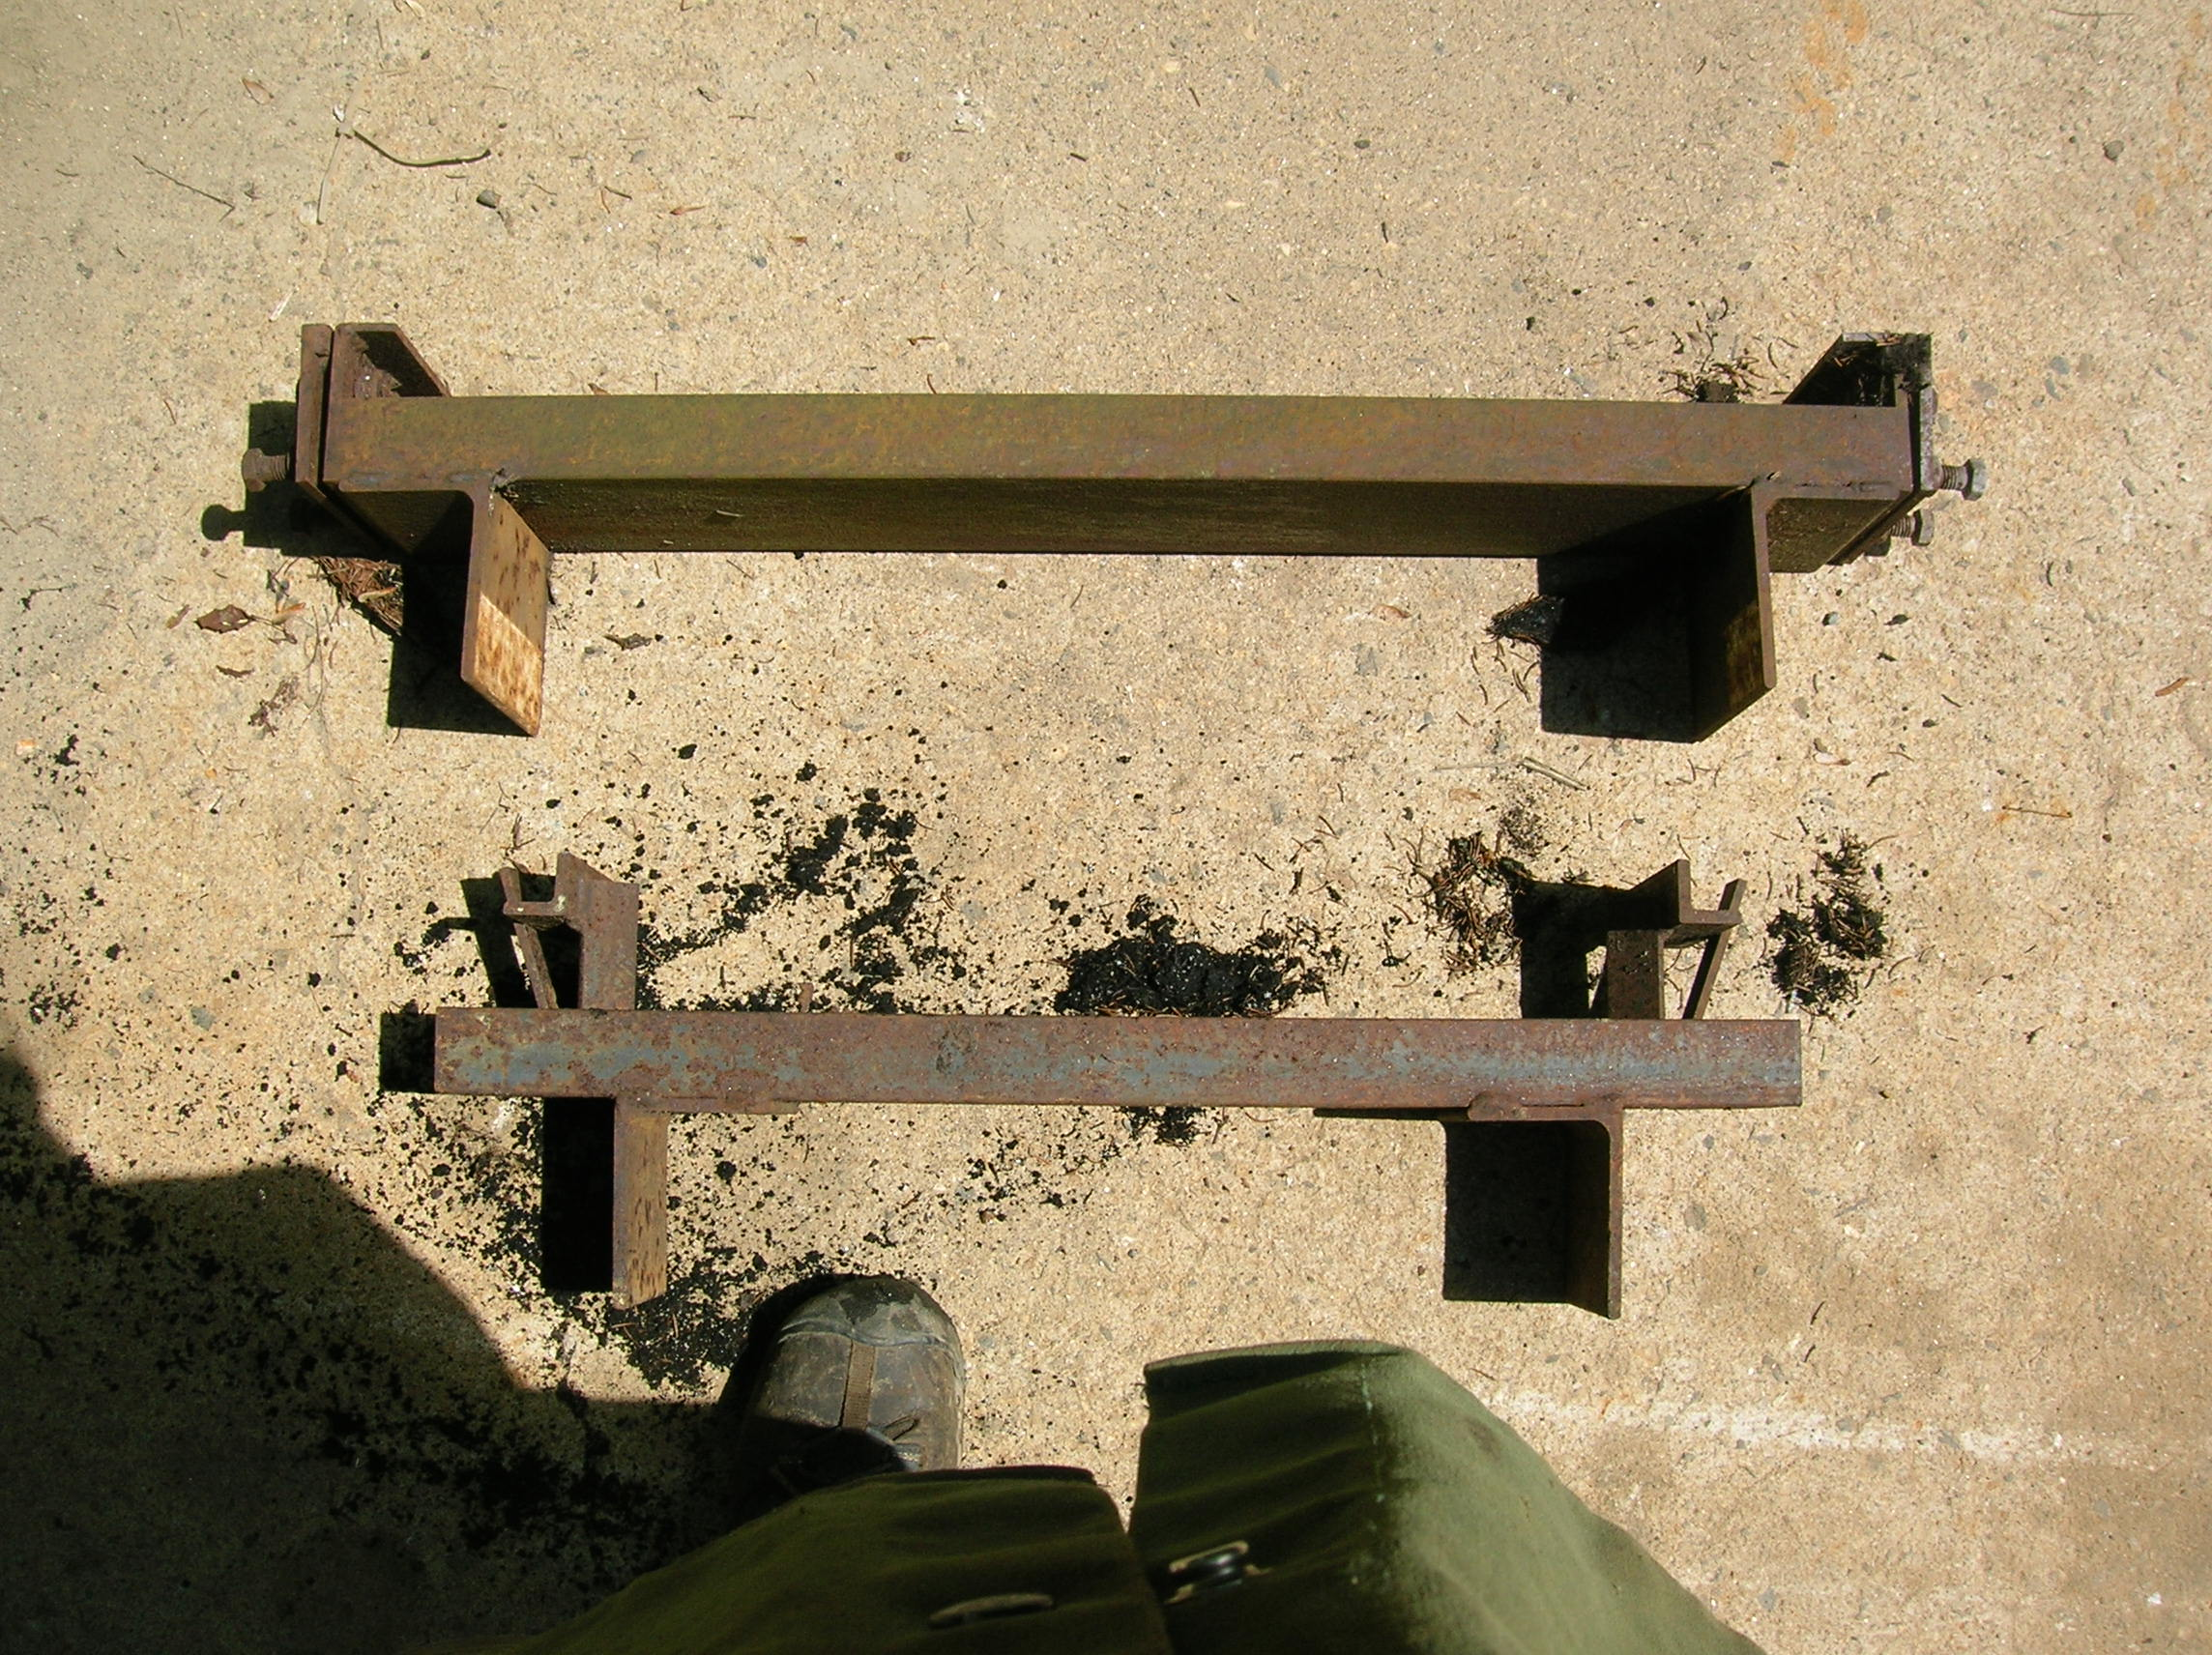 frame jig clamps1